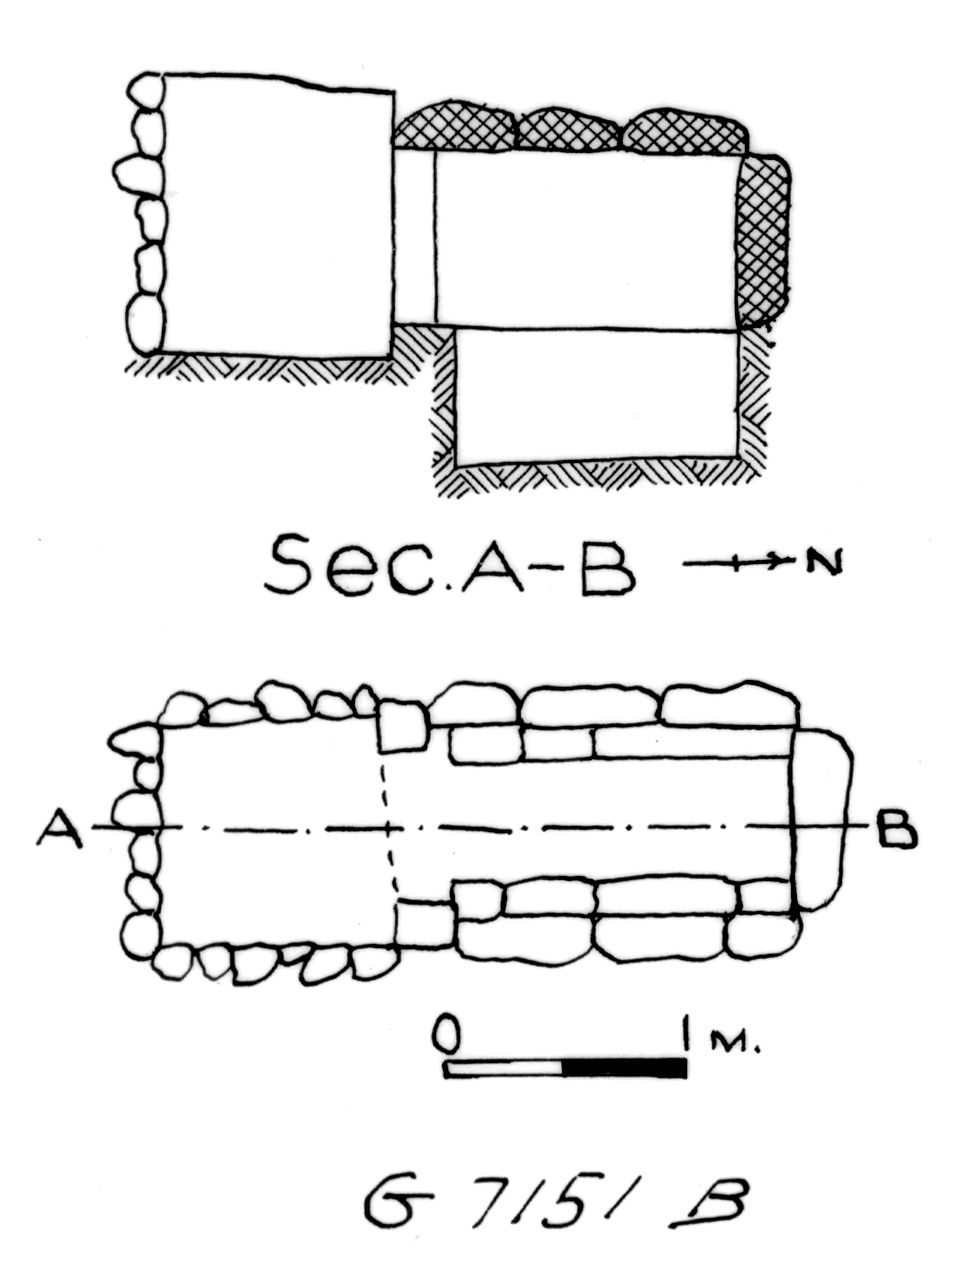 Maps and plans: G 7151, Shaft B